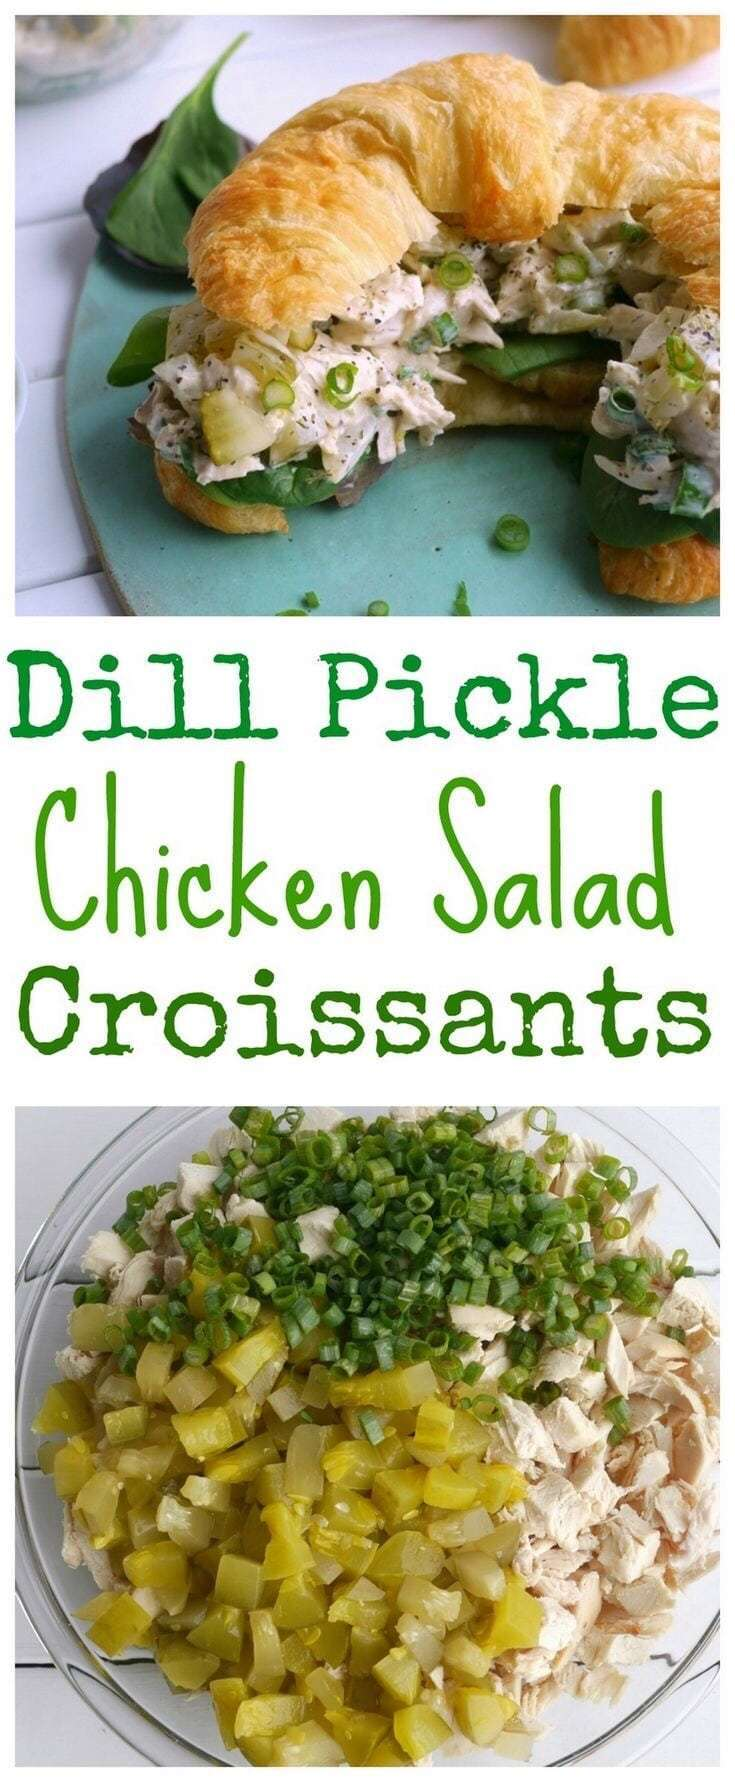 Dill Pickle Chicken Salad Croissants - - 20 Best Croissant Sandwich Recipes